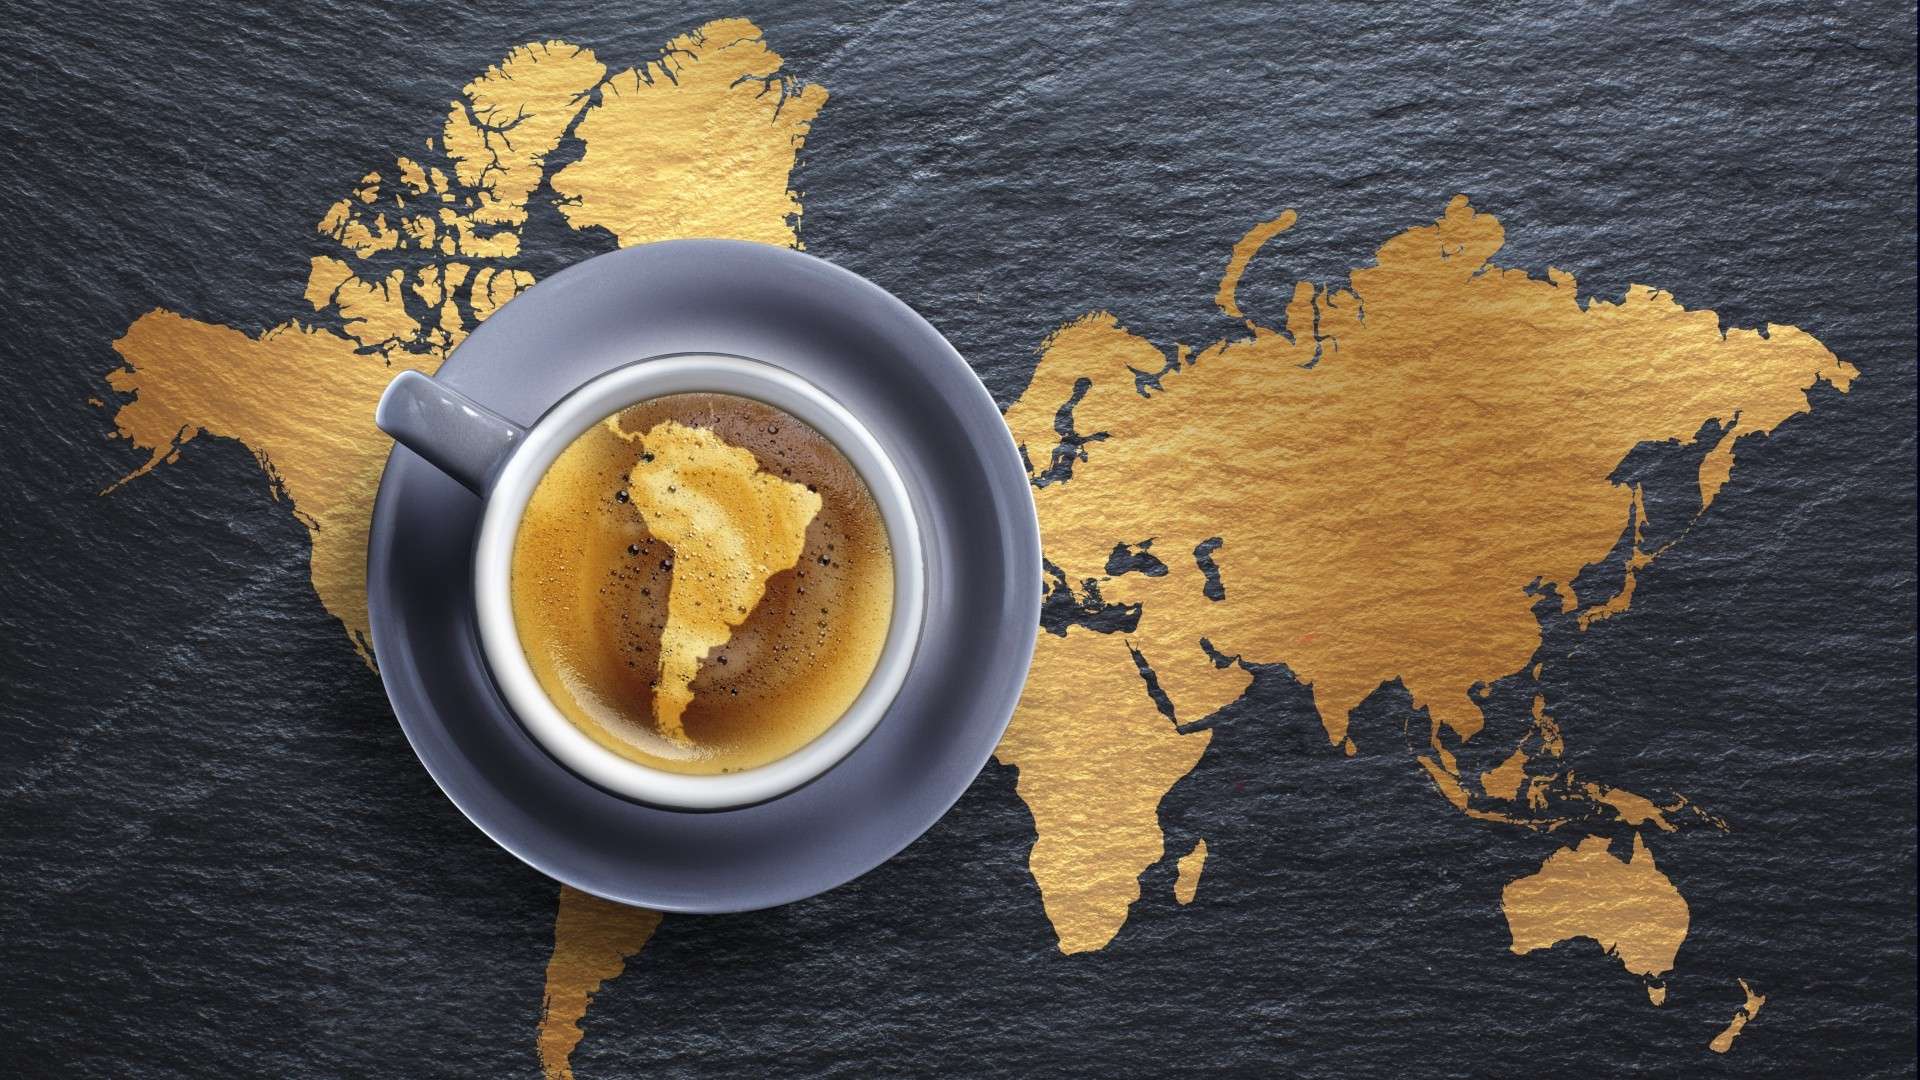 World archer tv show coffee brazil photo manipulation creative download wallpaper gumiabroncs Image collections